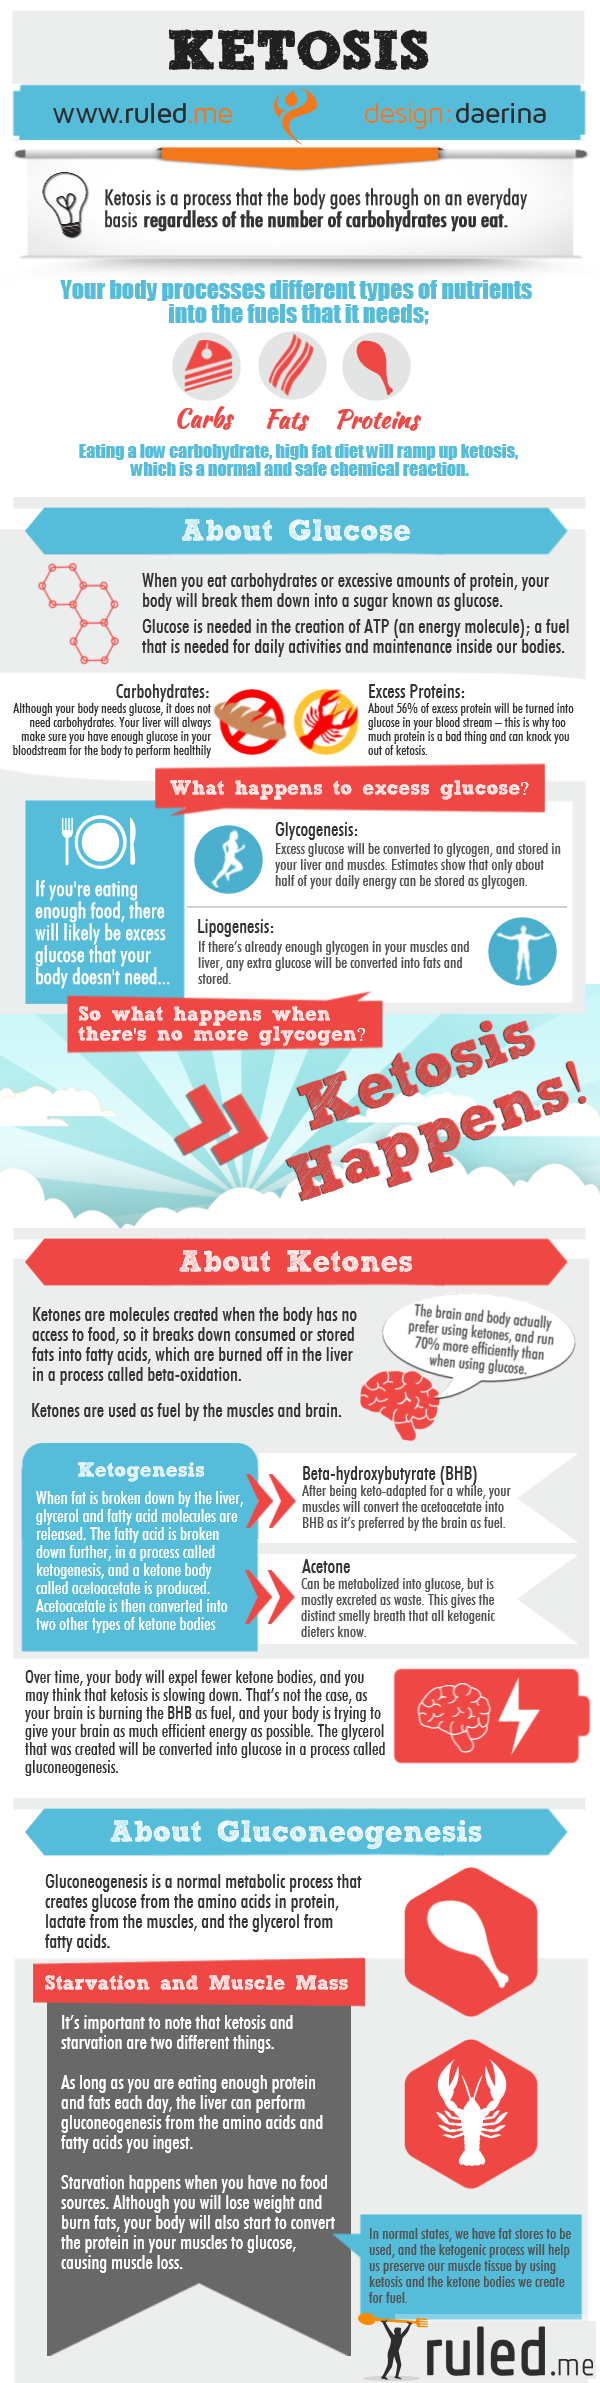 Ketosis, Ketones, and How It All Works | Better me | Ketogenic Diet, Keto, Diet